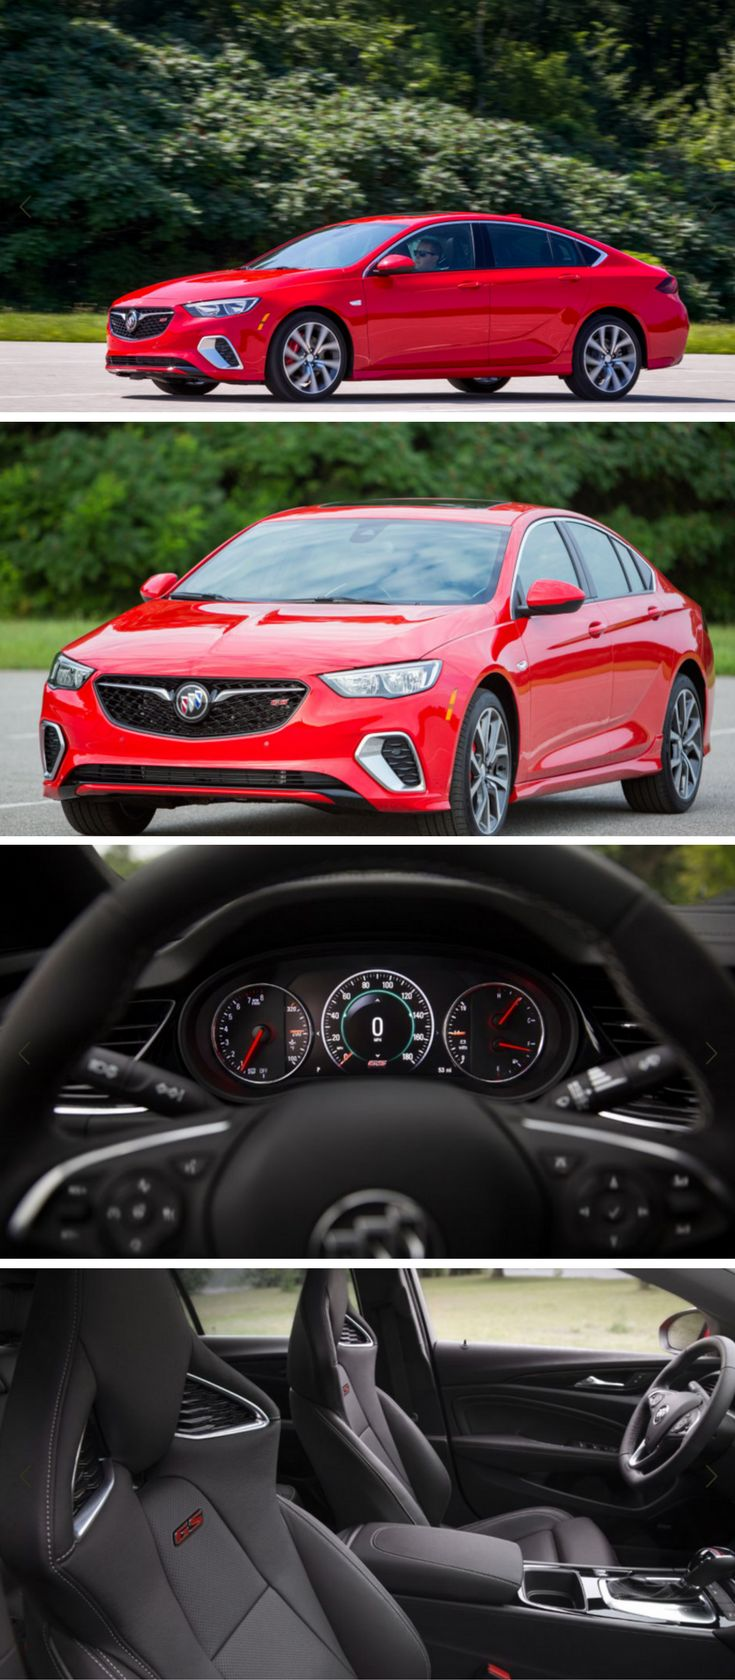 The 2018 buick regal gs debuts with 310 horsepower and all wheel drive